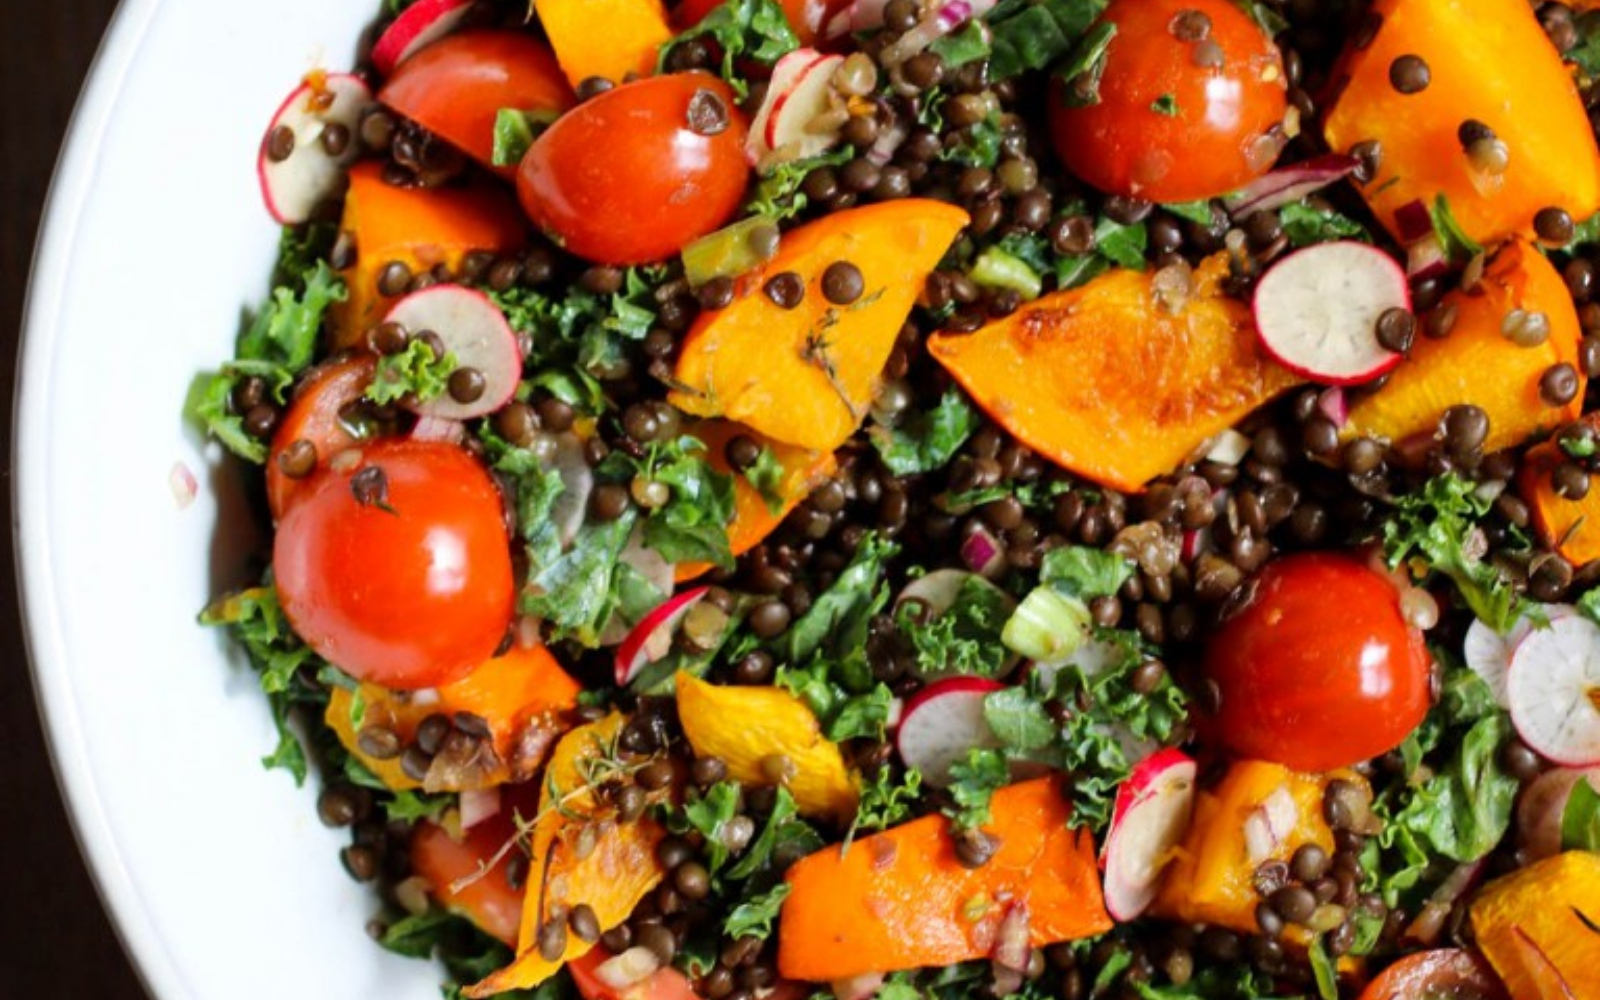 Pumpkin Salad With Black Lentils Kale And Cherry Tomatoes Vegan One Green Planet